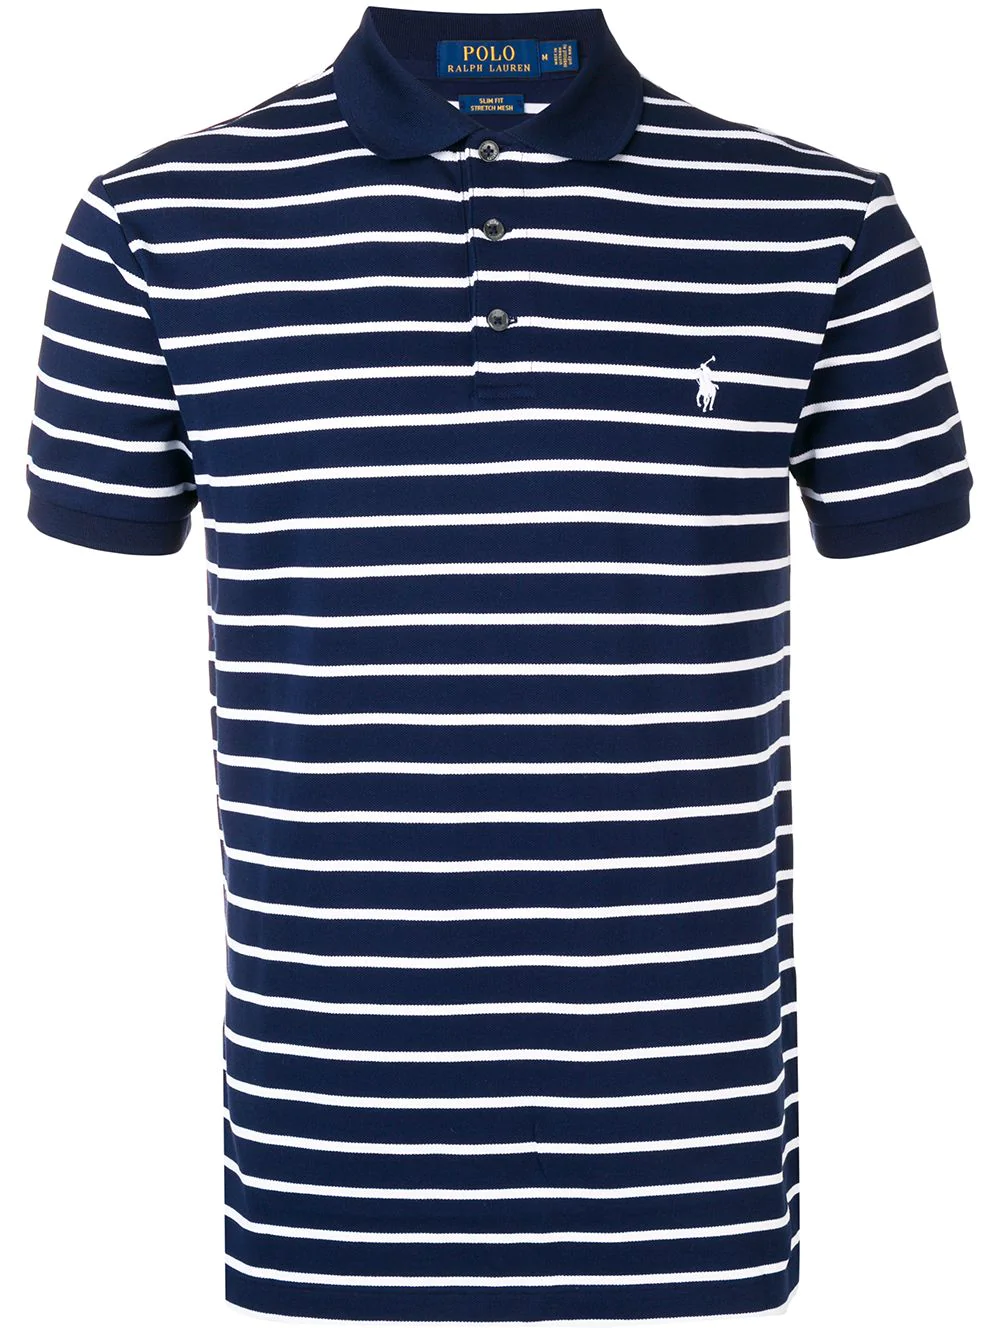 c33e4aad7b57e8 Polo Ralph Lauren Striped Polo T-Shirt - French Navy In French Navy ...